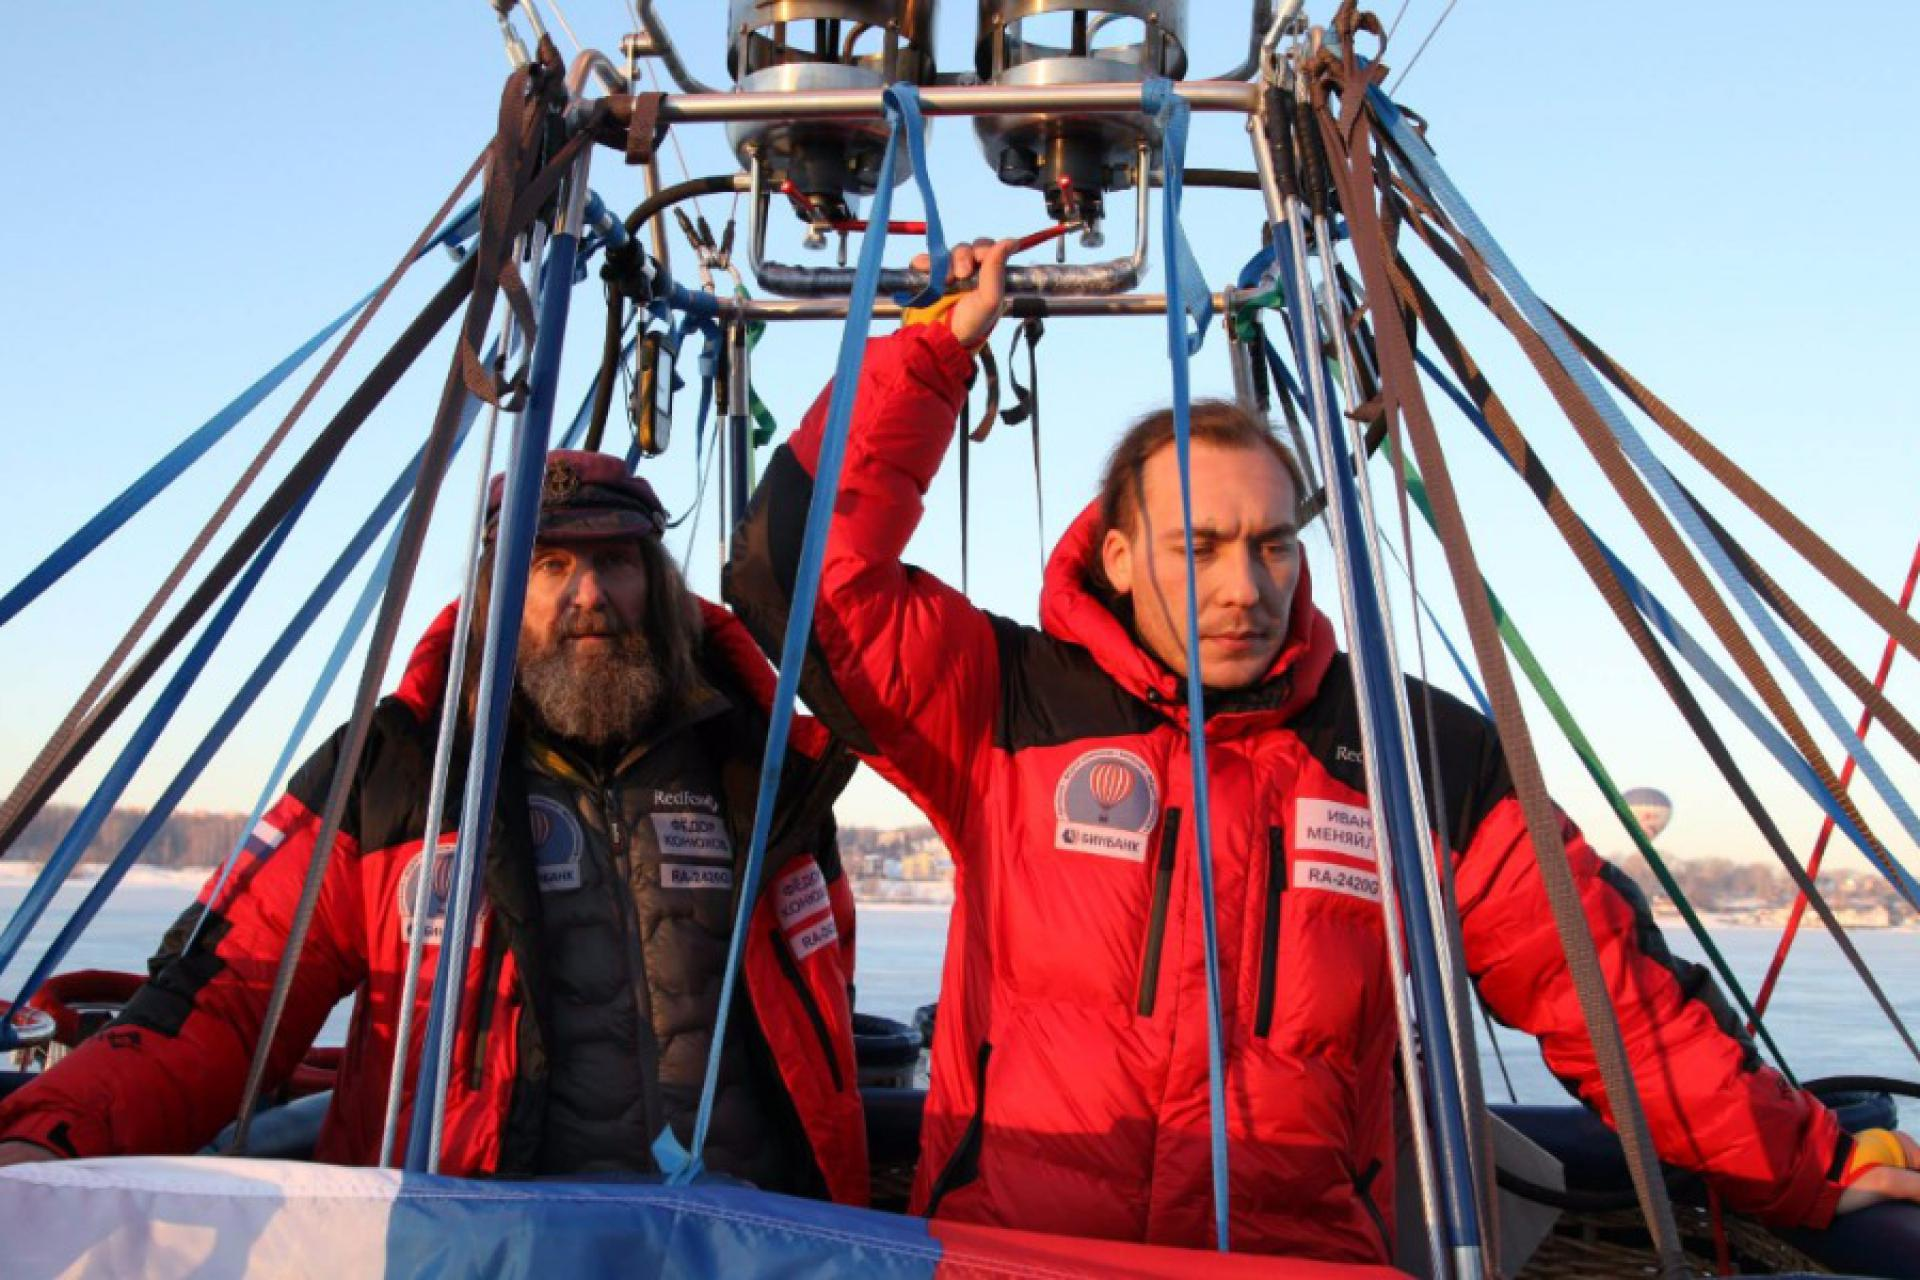 Fedor Konyukhov intends to break a world record of the altitude on the balloon